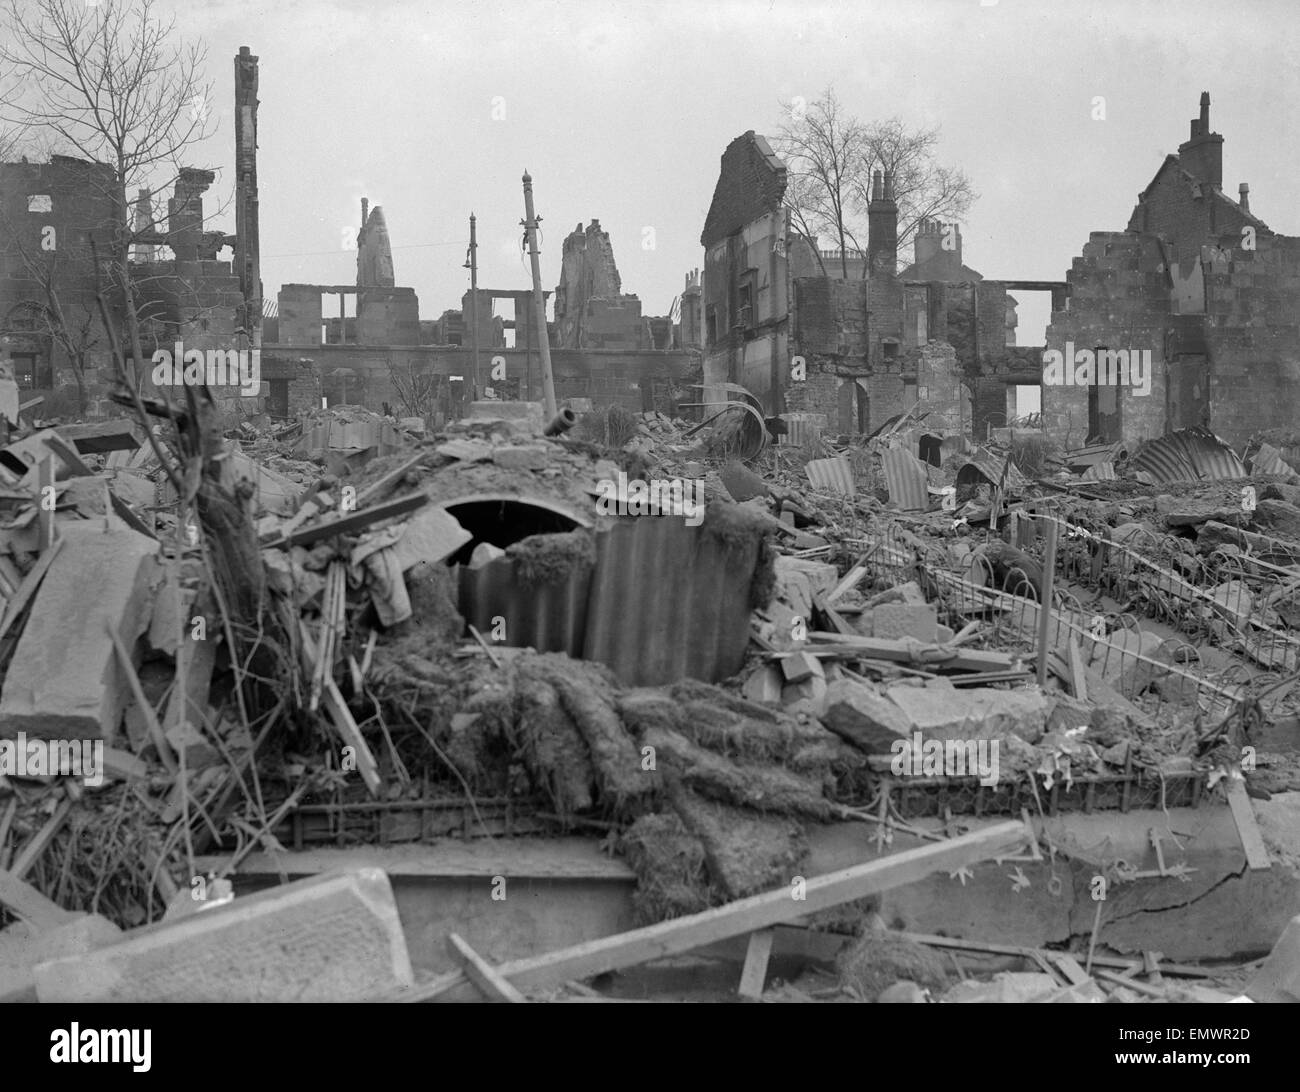 WW2 Air Raid Damage Bomb damage at Clydeside Glasgow - Stock Image